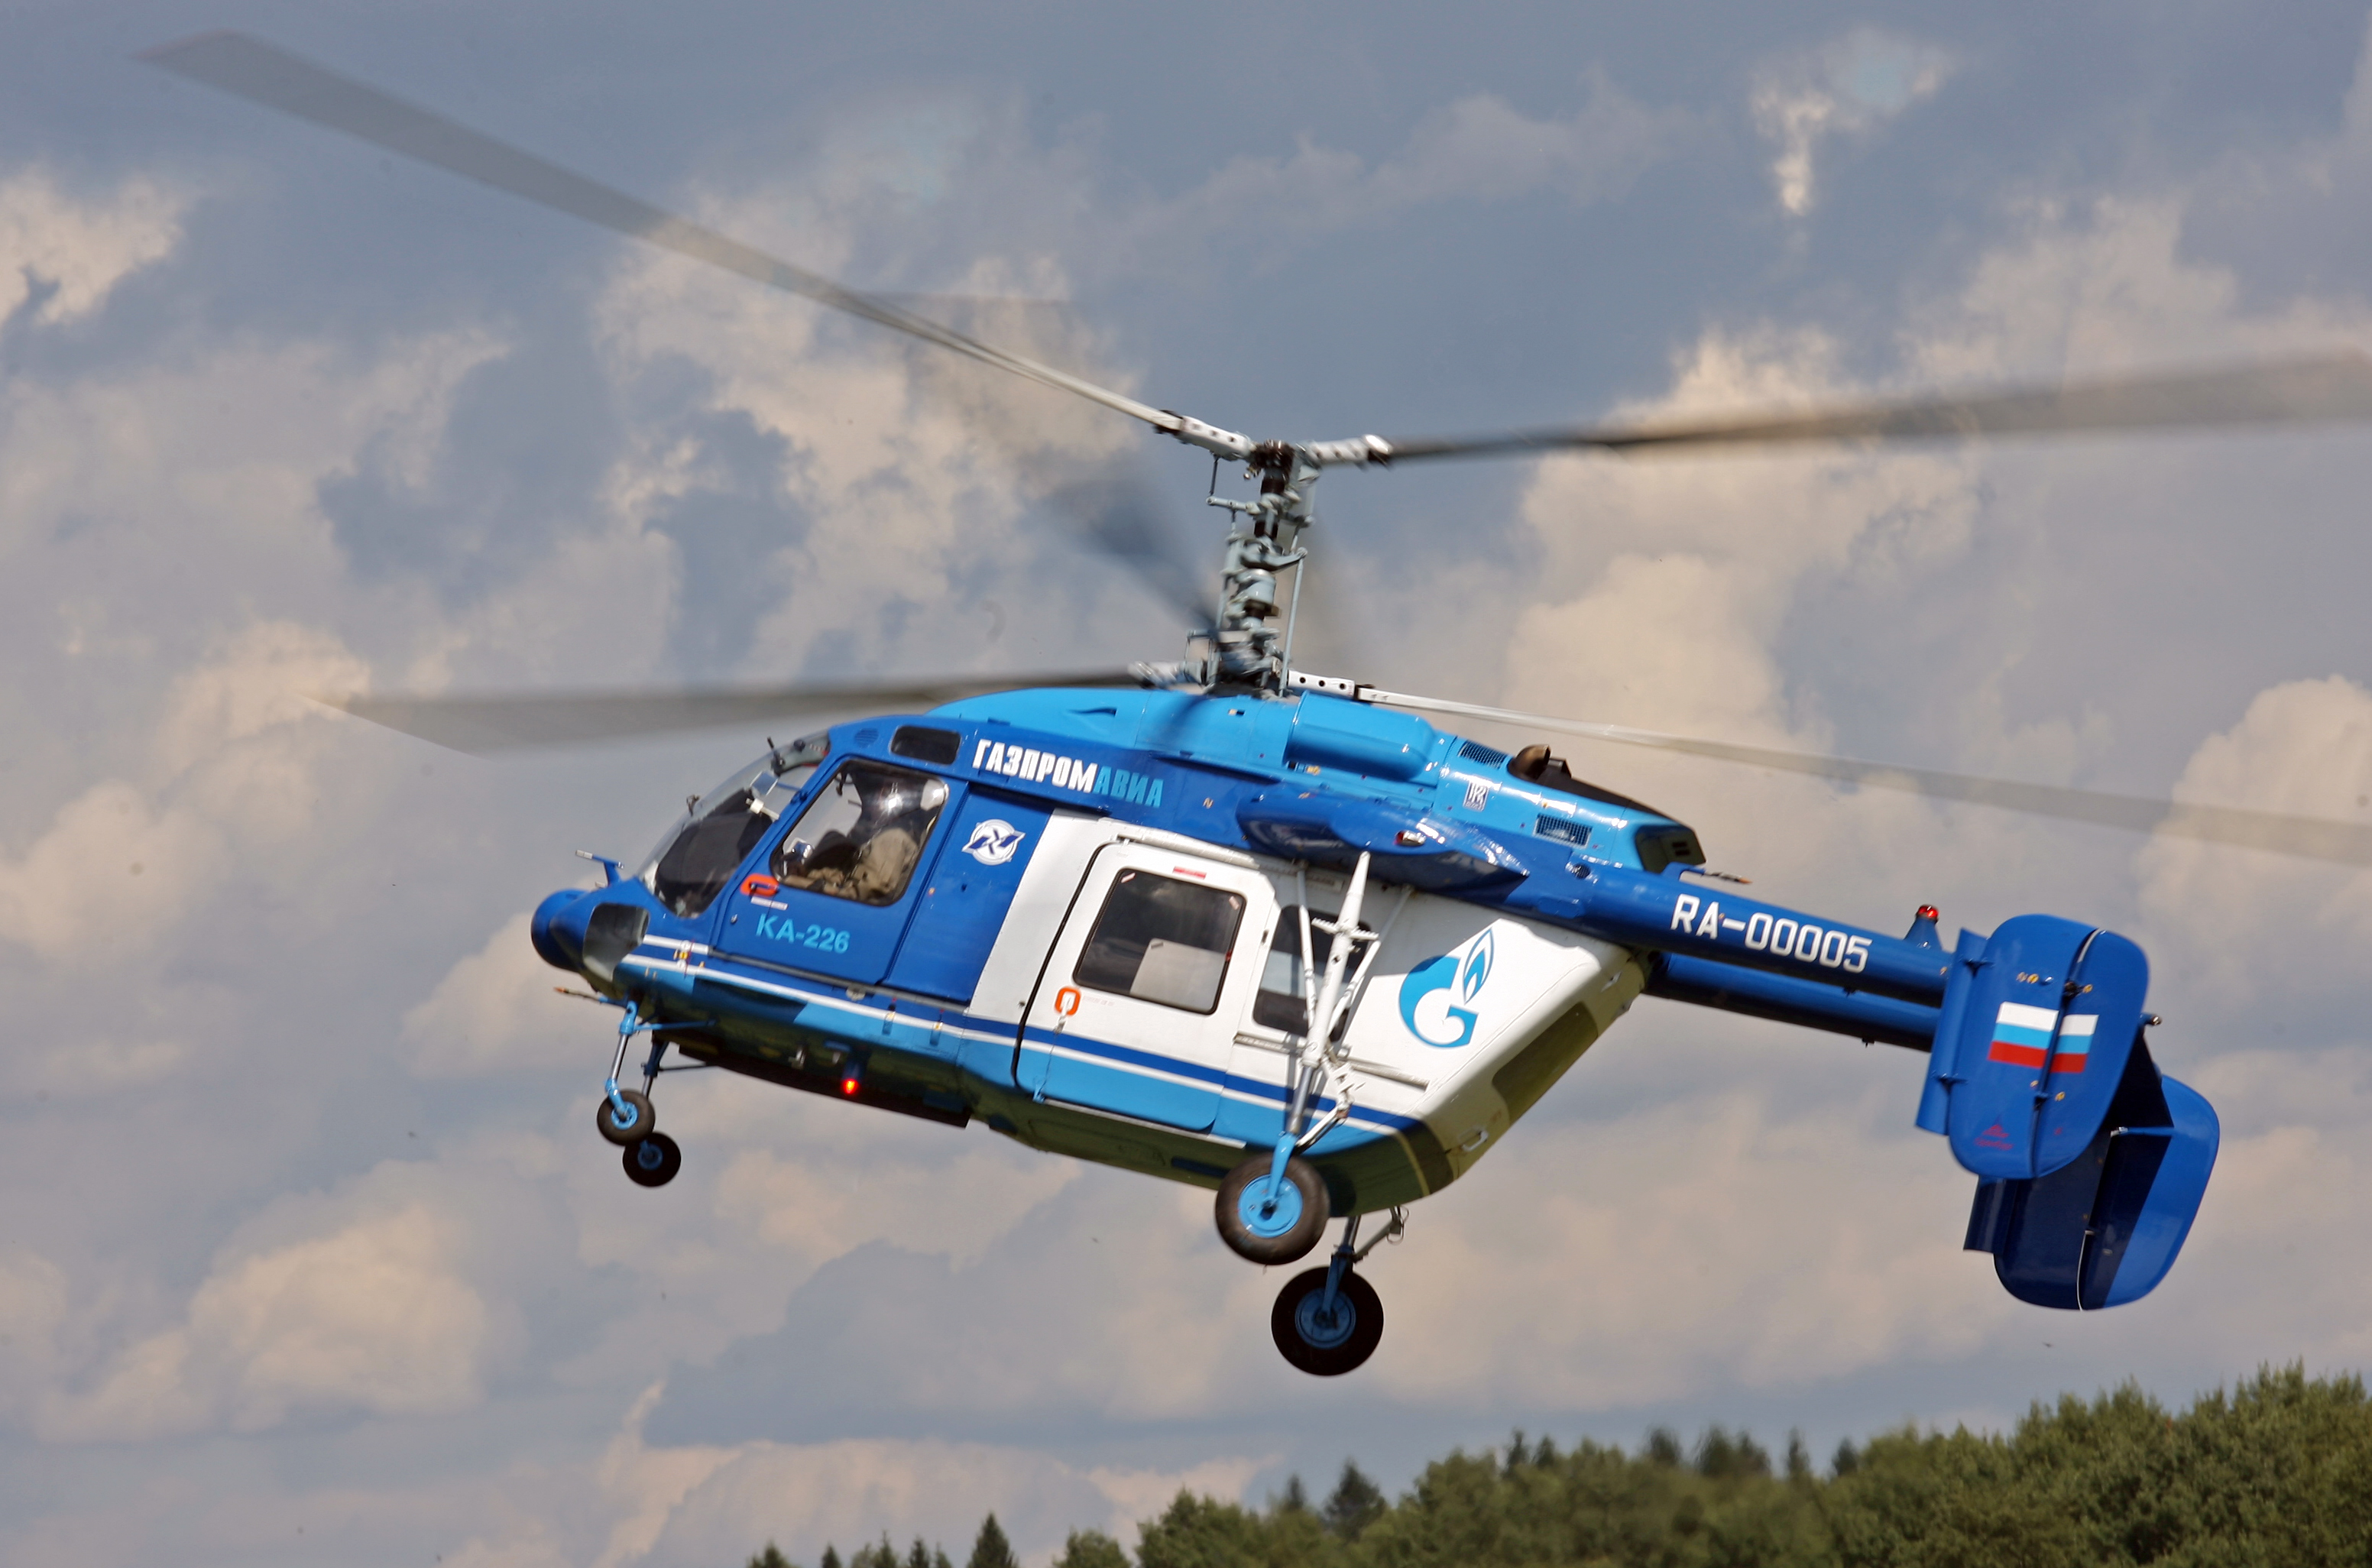 russia approves joint venture with india for helicopter production